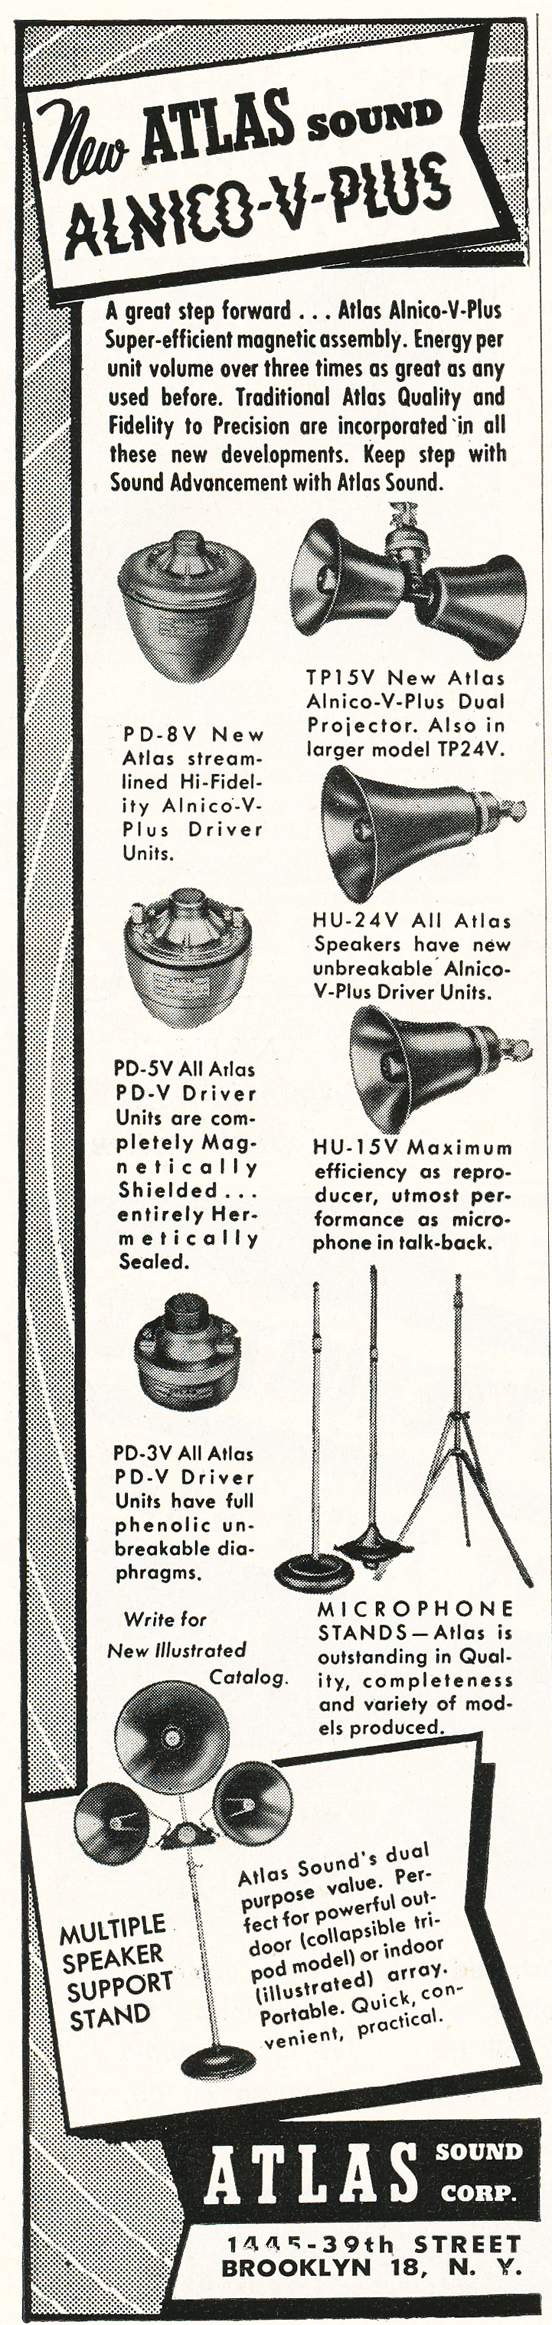 1948 ad for Atlas microphone stands